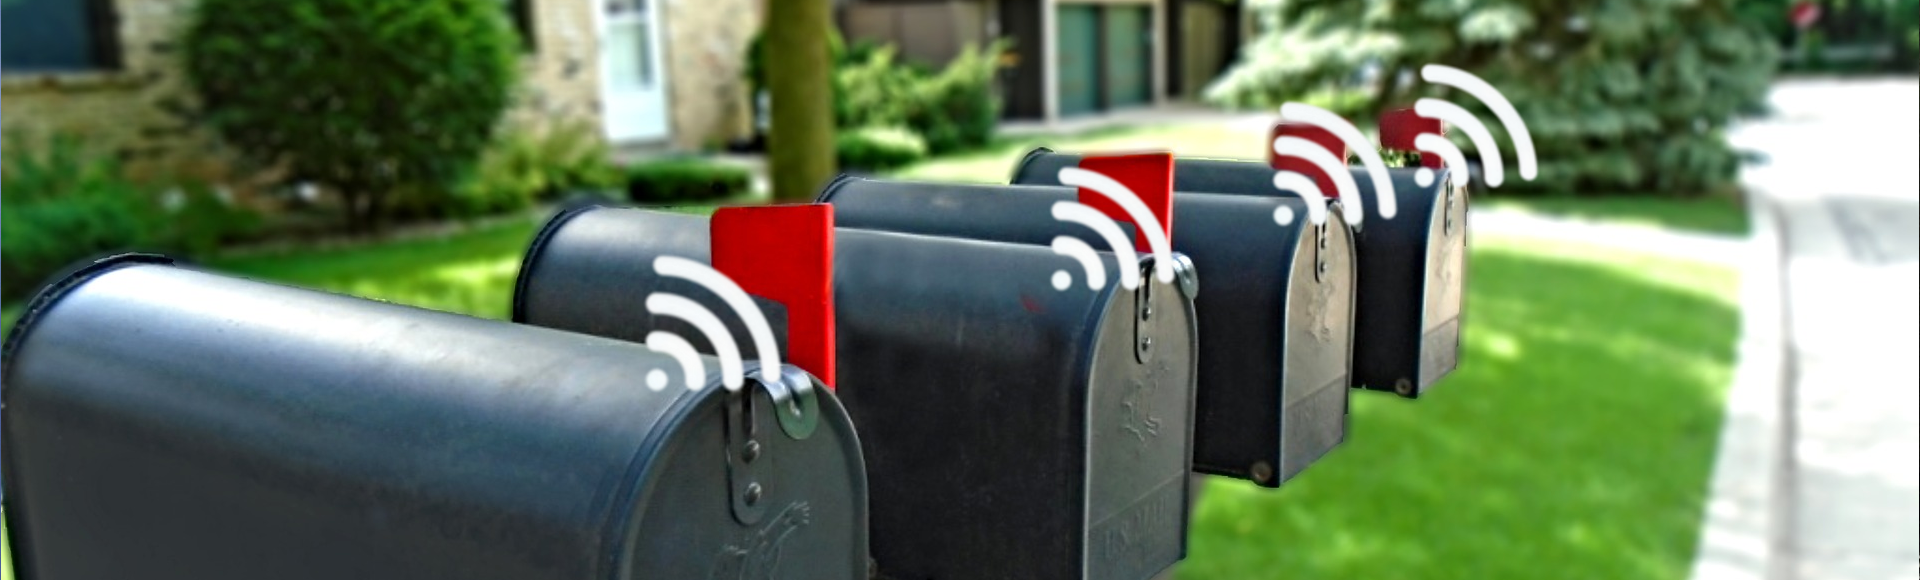 NB-IoT for Smart Connected Mail Boxes